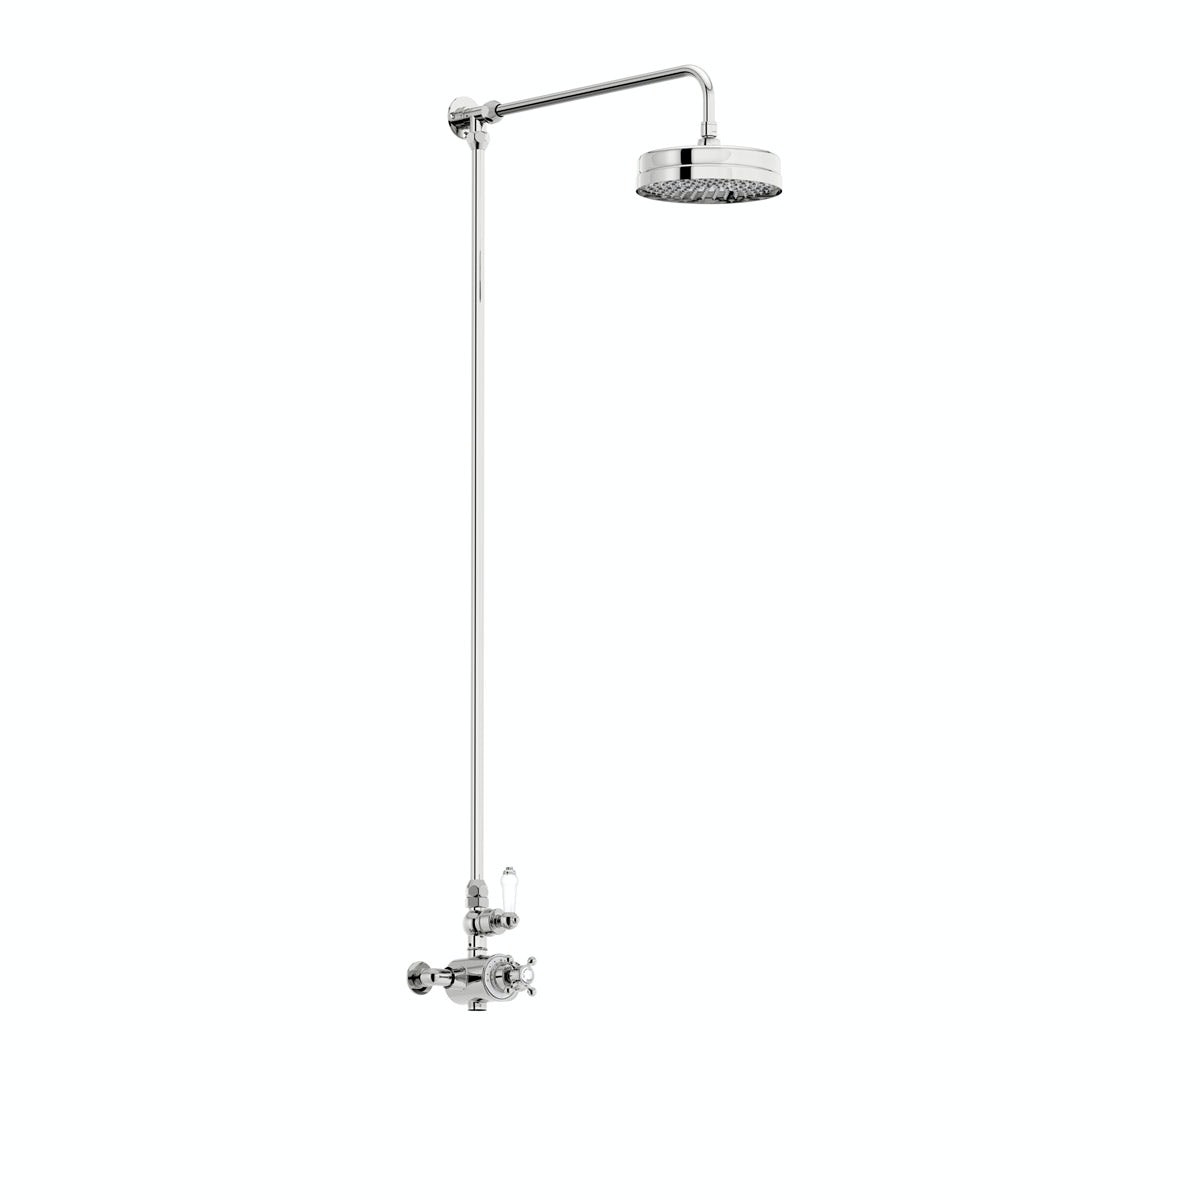 The Bath Co. Winchester rain can exposed riser rail shower system